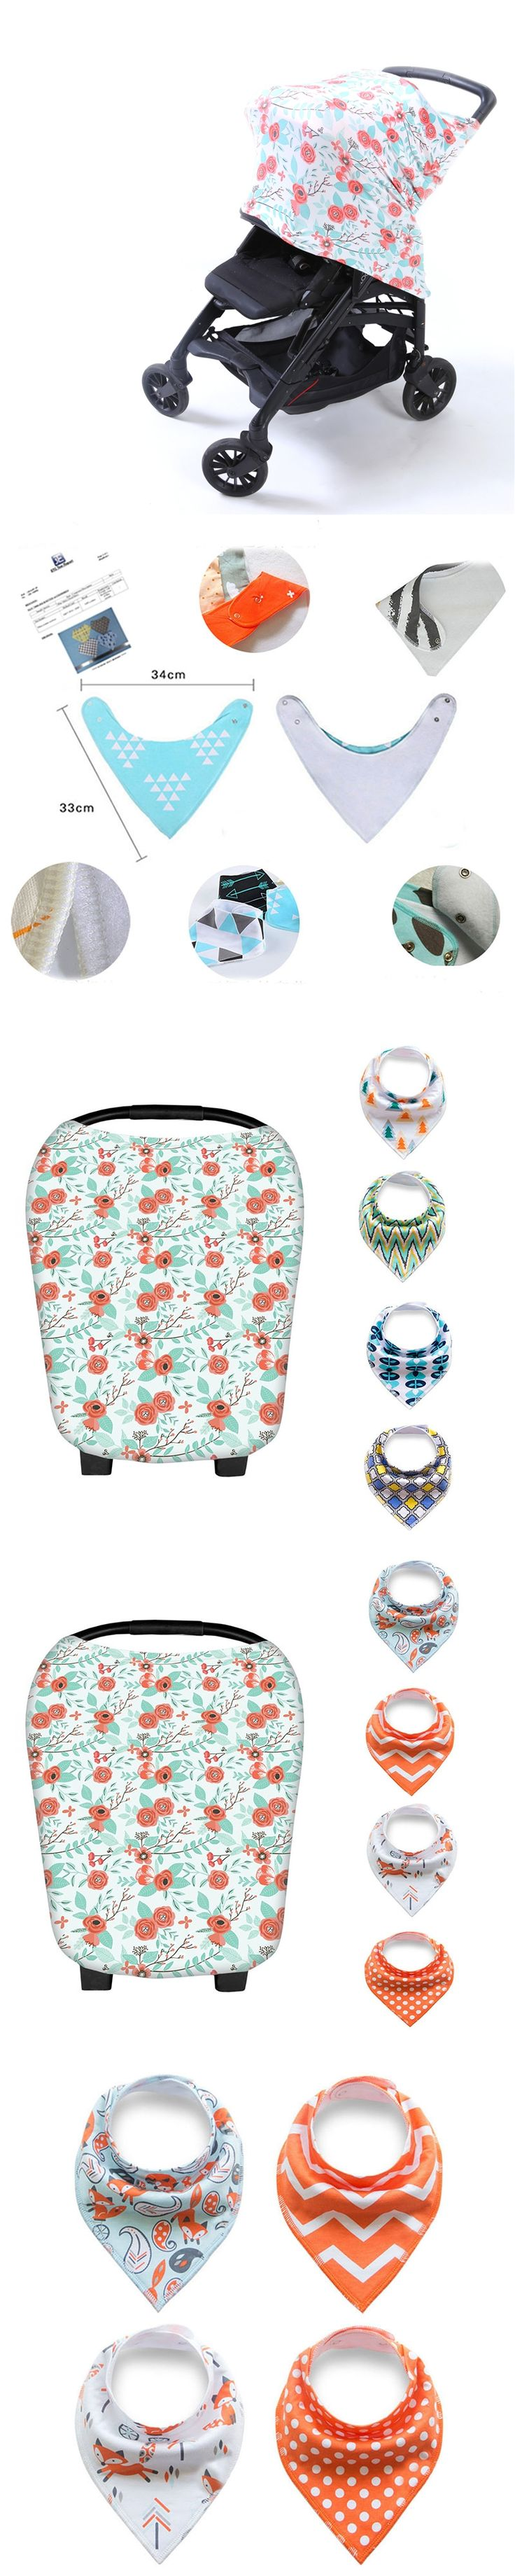 Floral Styles Multi-Use Nursing Cover Scarf for Breastfeeding / Baby Car Seat Canopy with 4 Pack of Baby Bandana Drool Bib